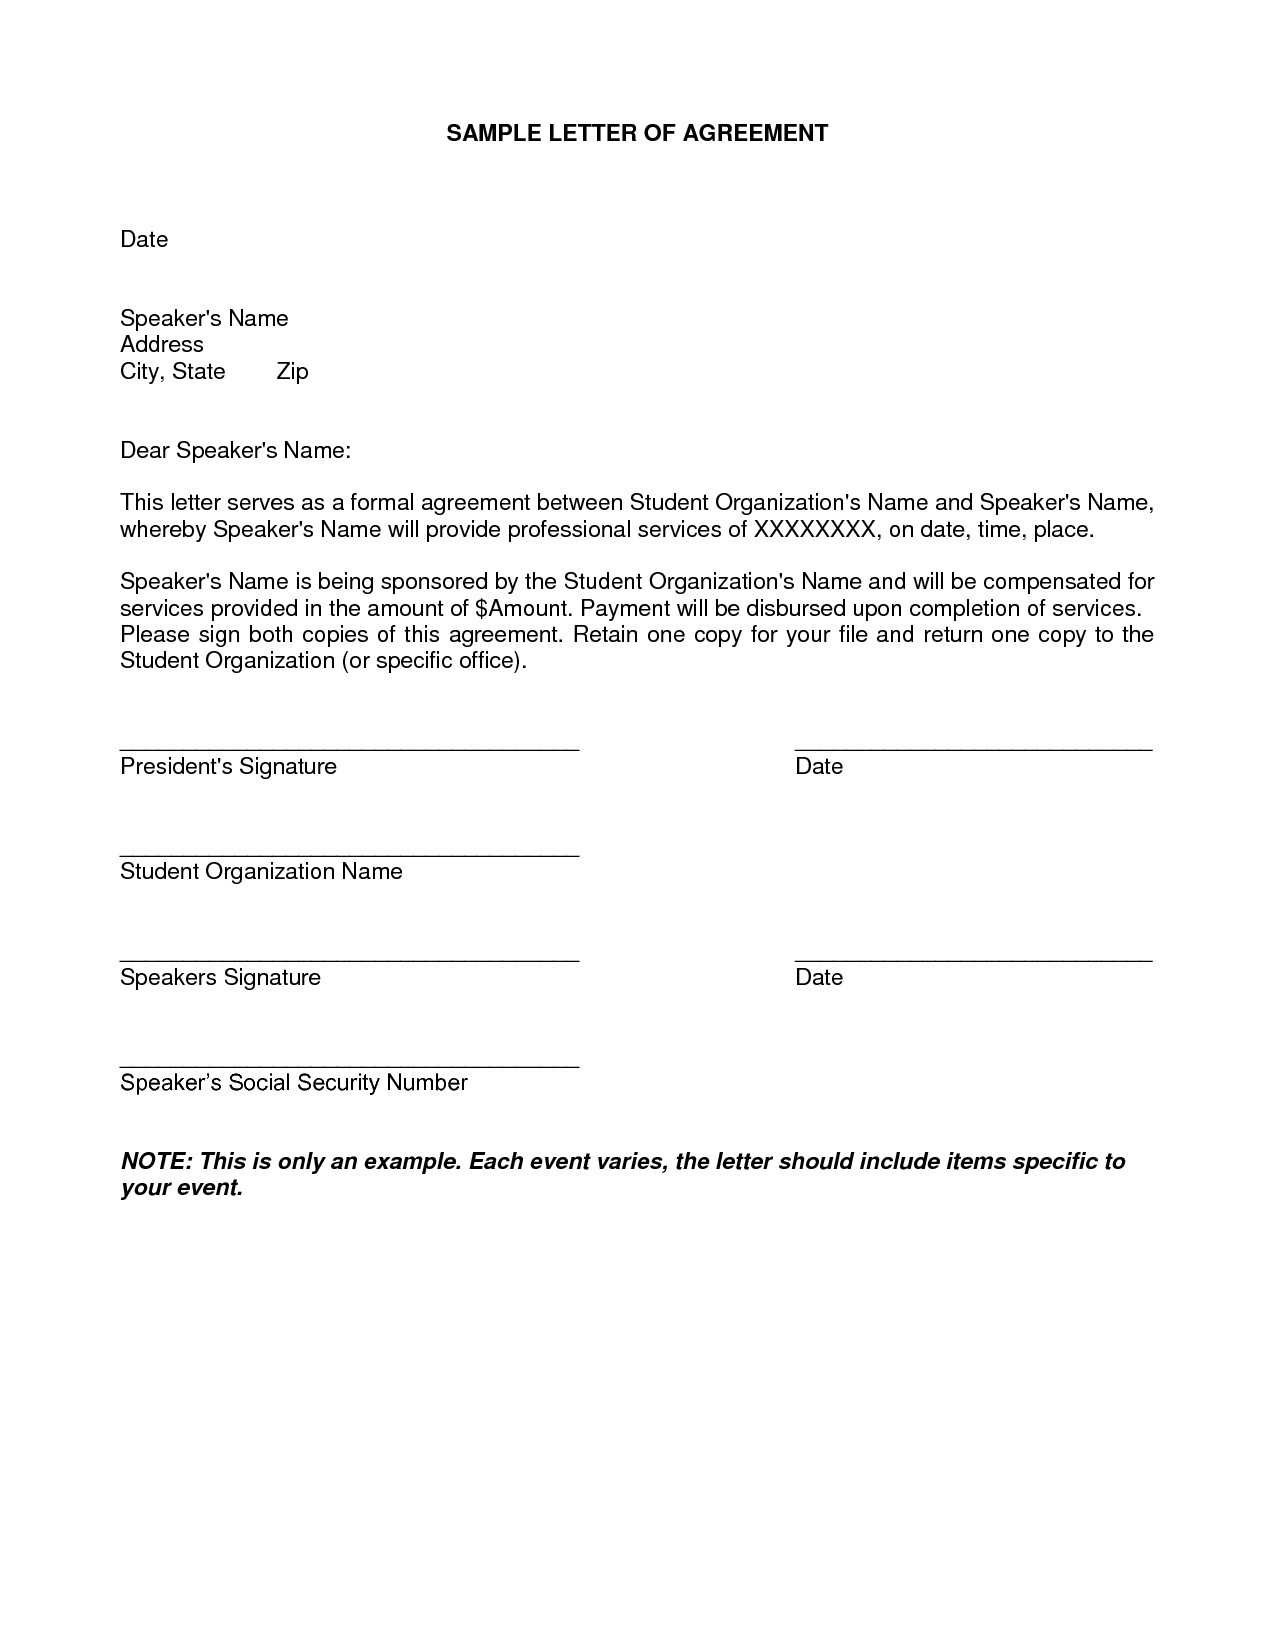 Personal Loan Repayment Letter Template - 16 Elegant Payment Arrangement Contract